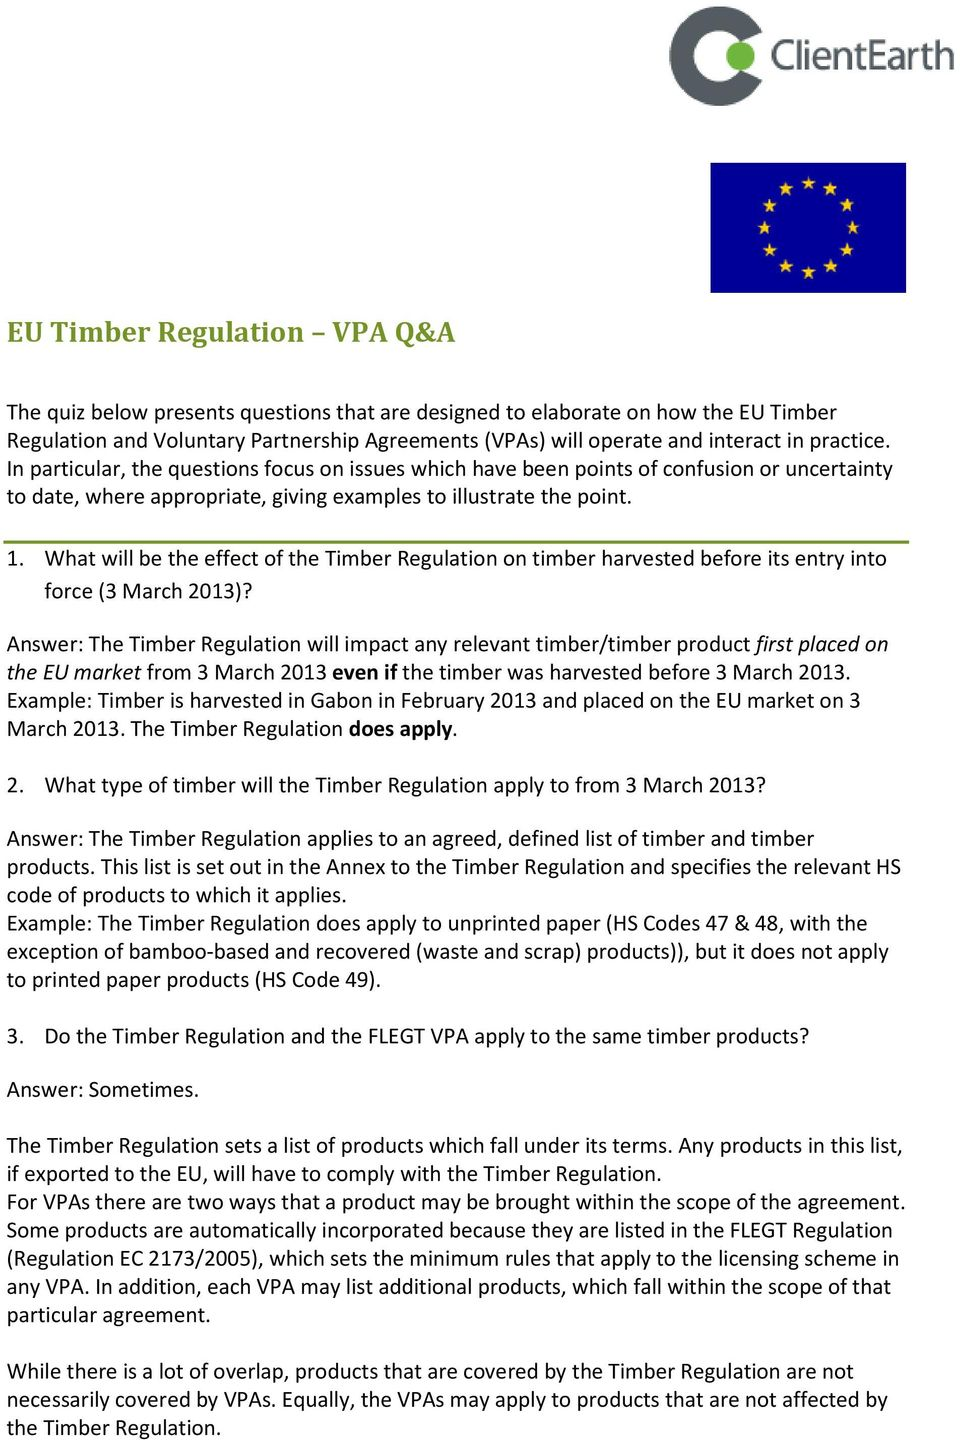 What will be the effect of the Timber Regulation on timber harvested before its entry into force (3 March 2013)?